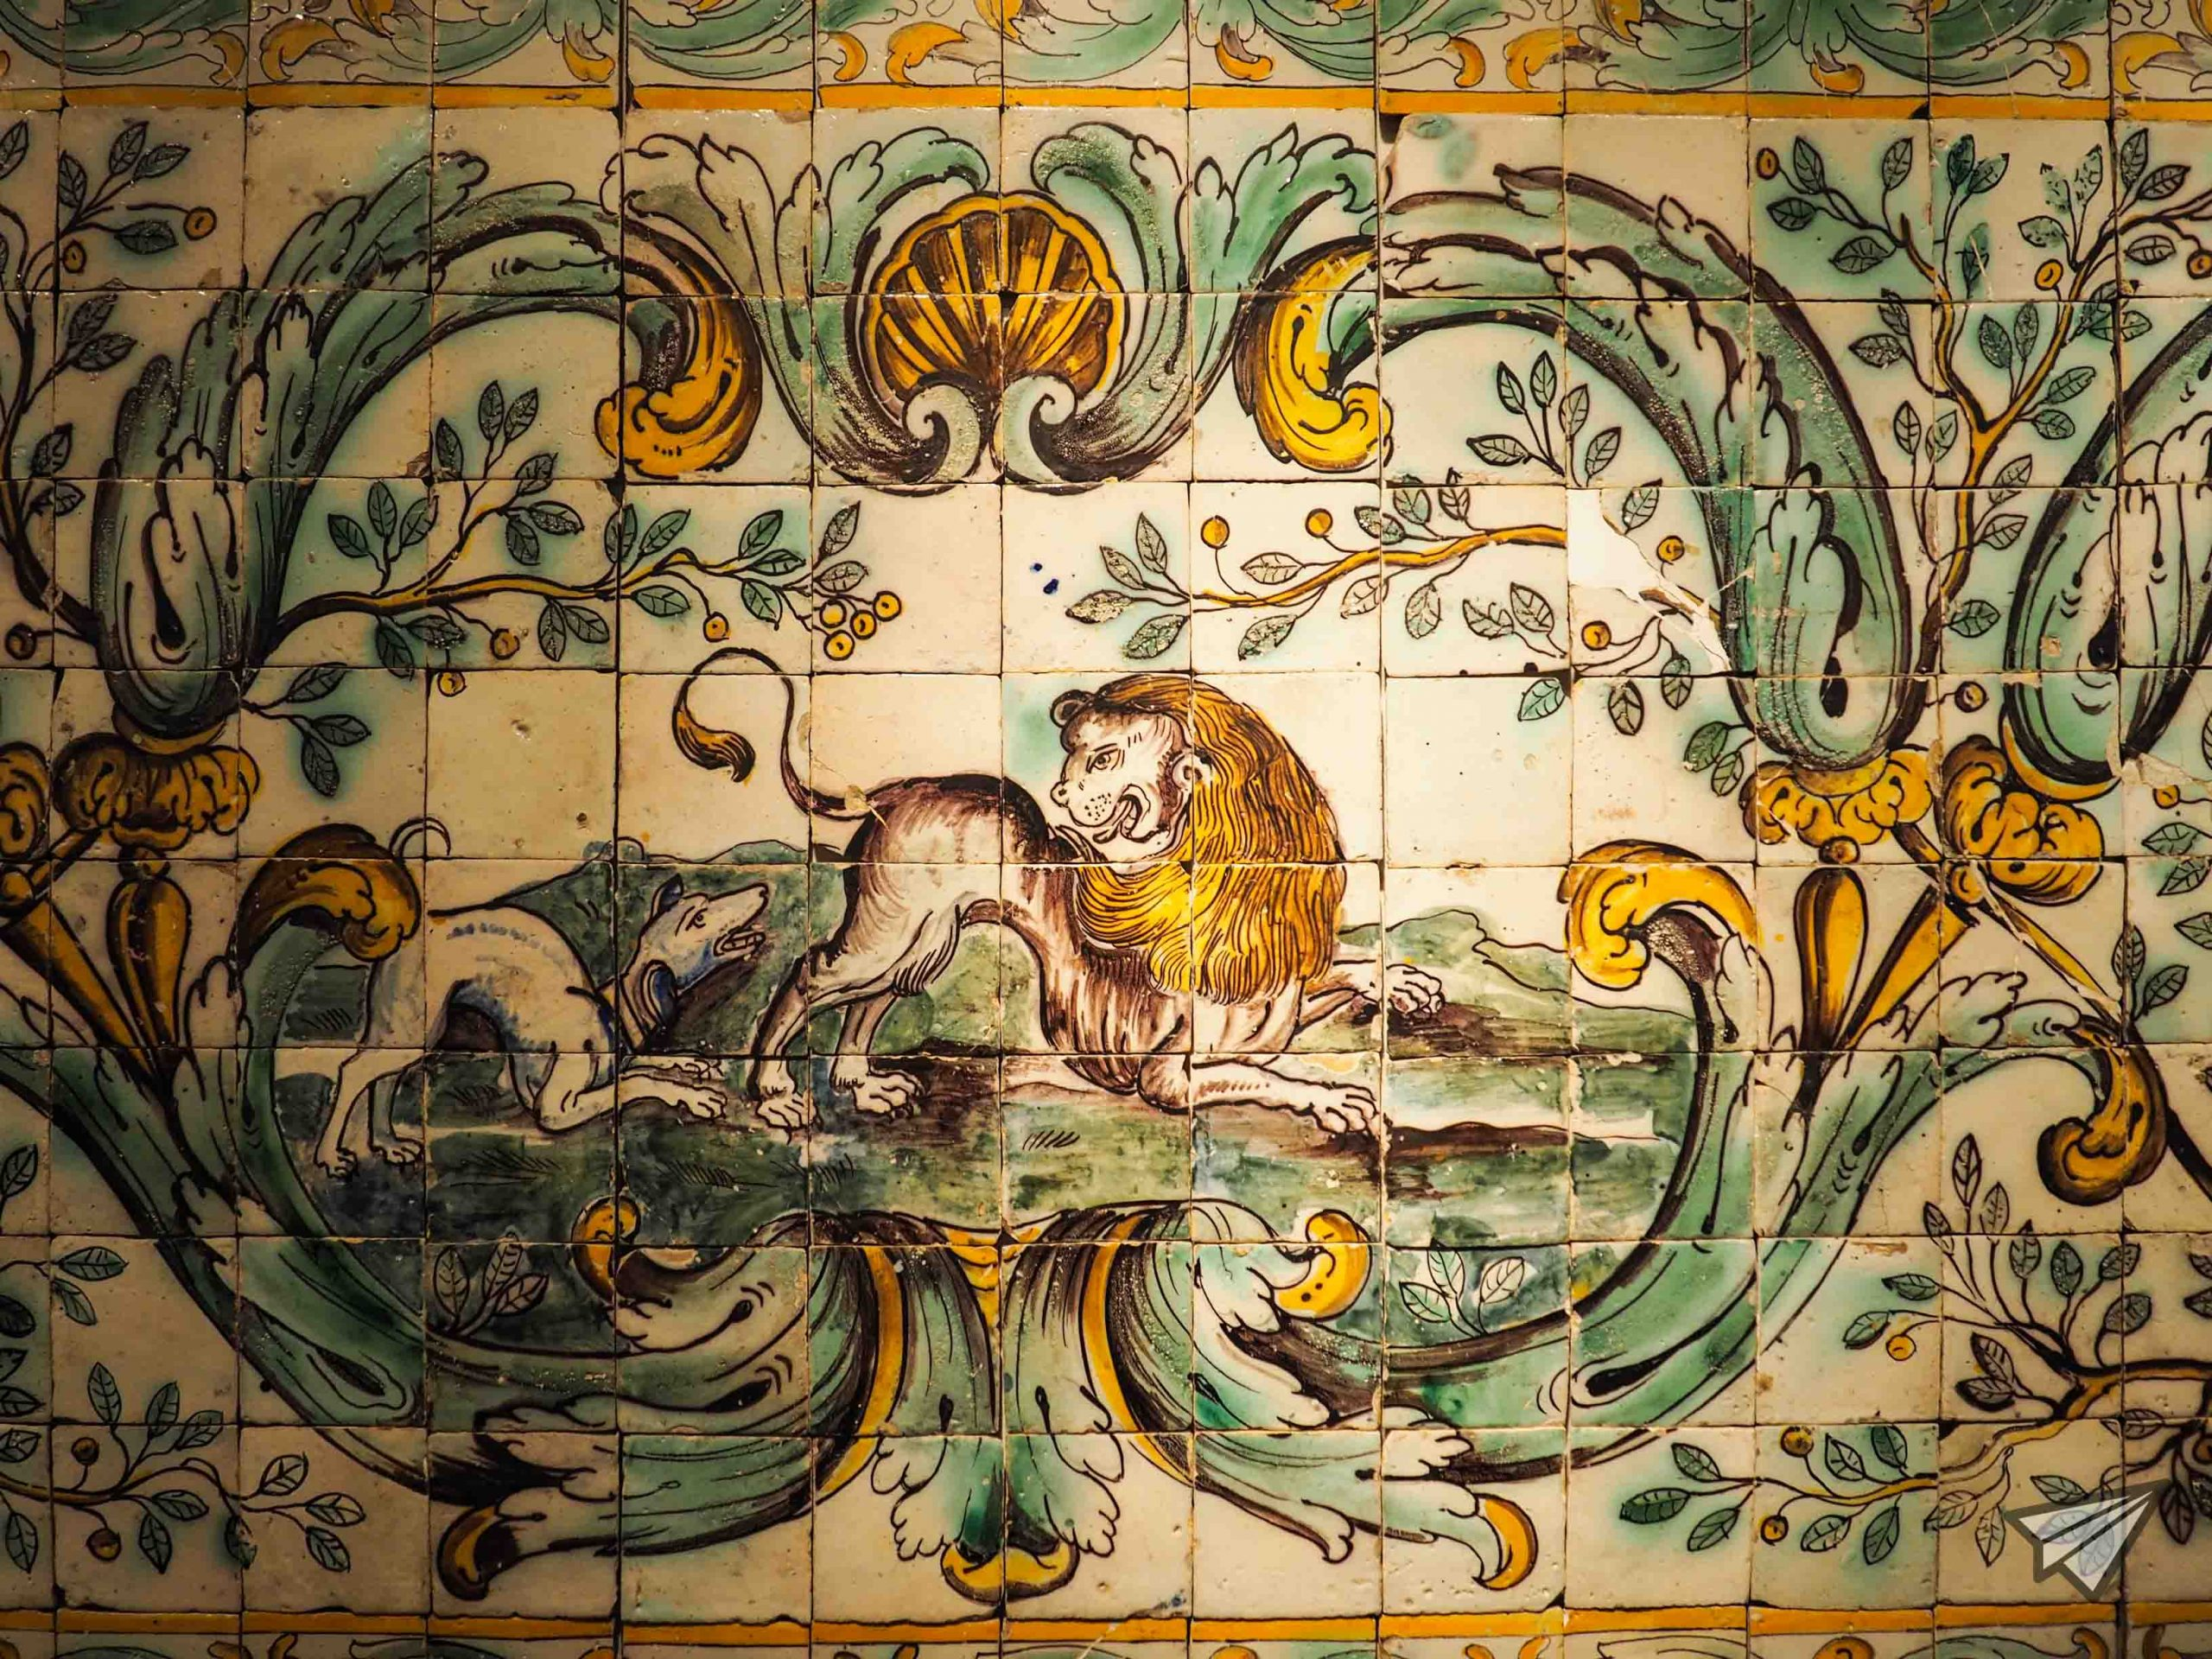 Museu Nacional do Azulejo art